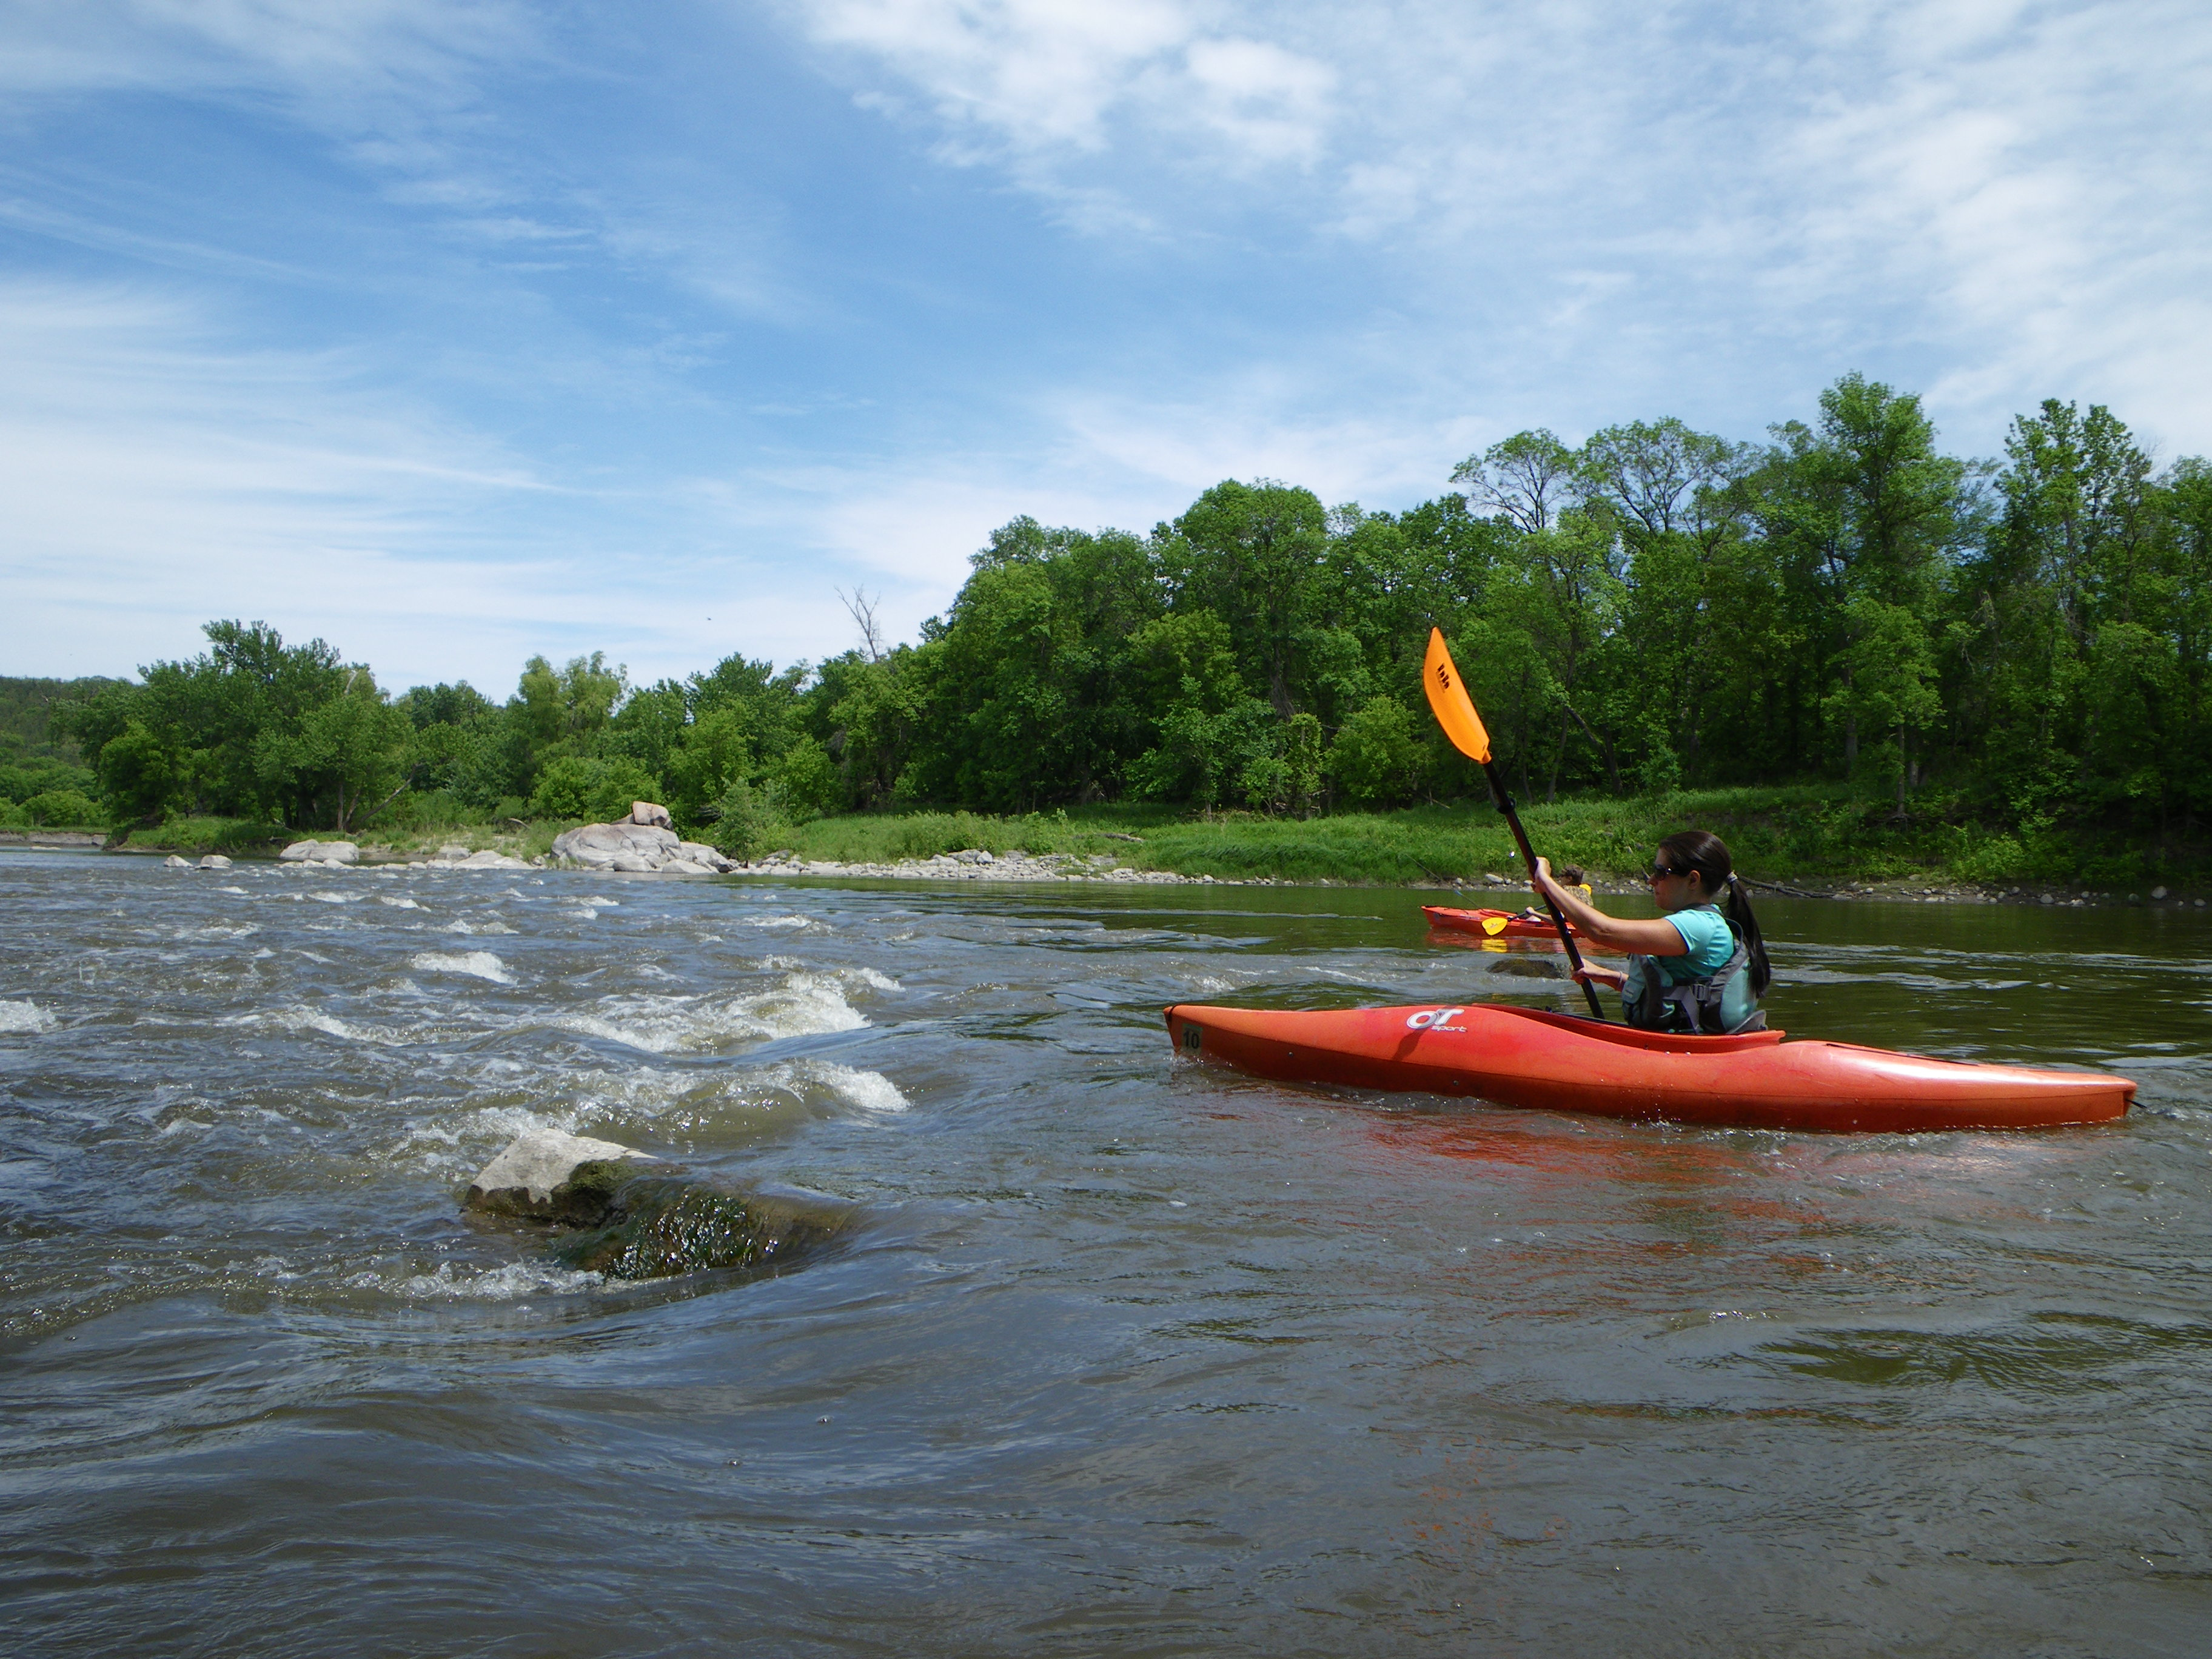 Kayaking the Minnesota River